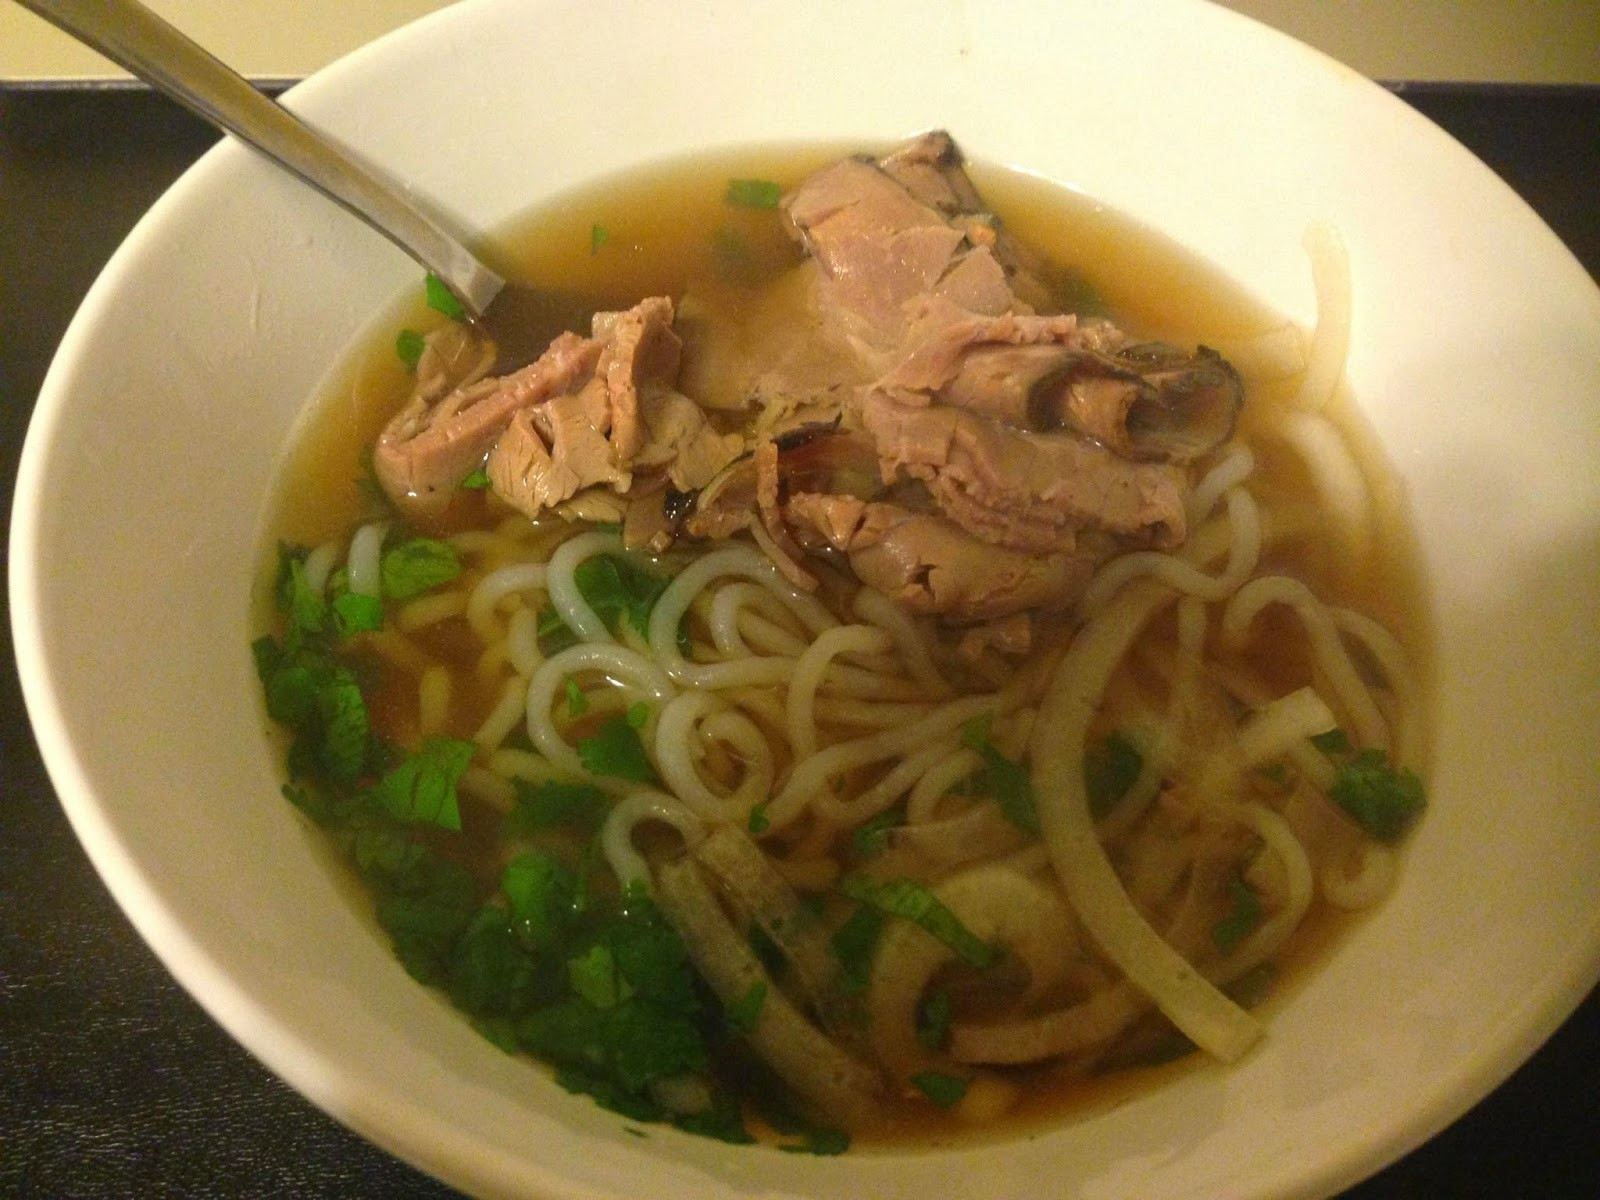 Keto Friendly Noodles  5 Best Low Carb Substitutes for your Favorite Foods on